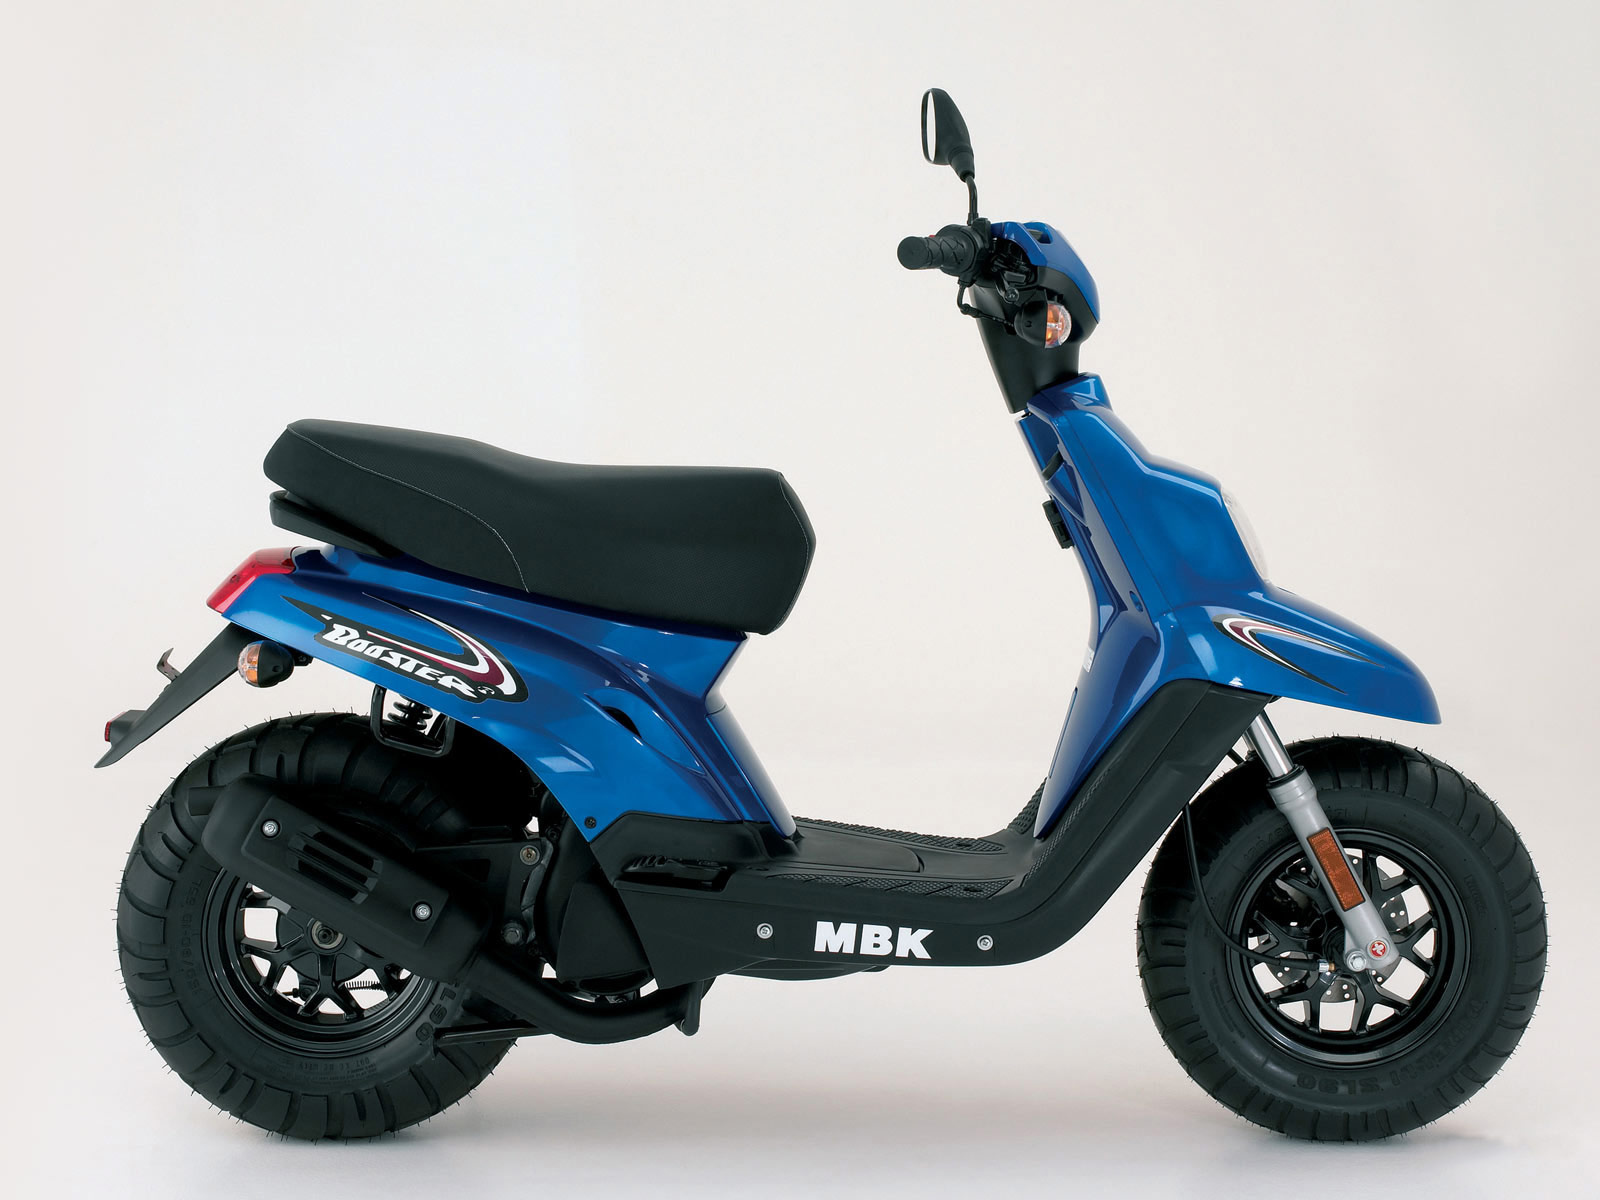 4 Stroke Motorcycle Wiring Diagram Mbk Scooter Pictures 2006 Mbk Booster Specifications